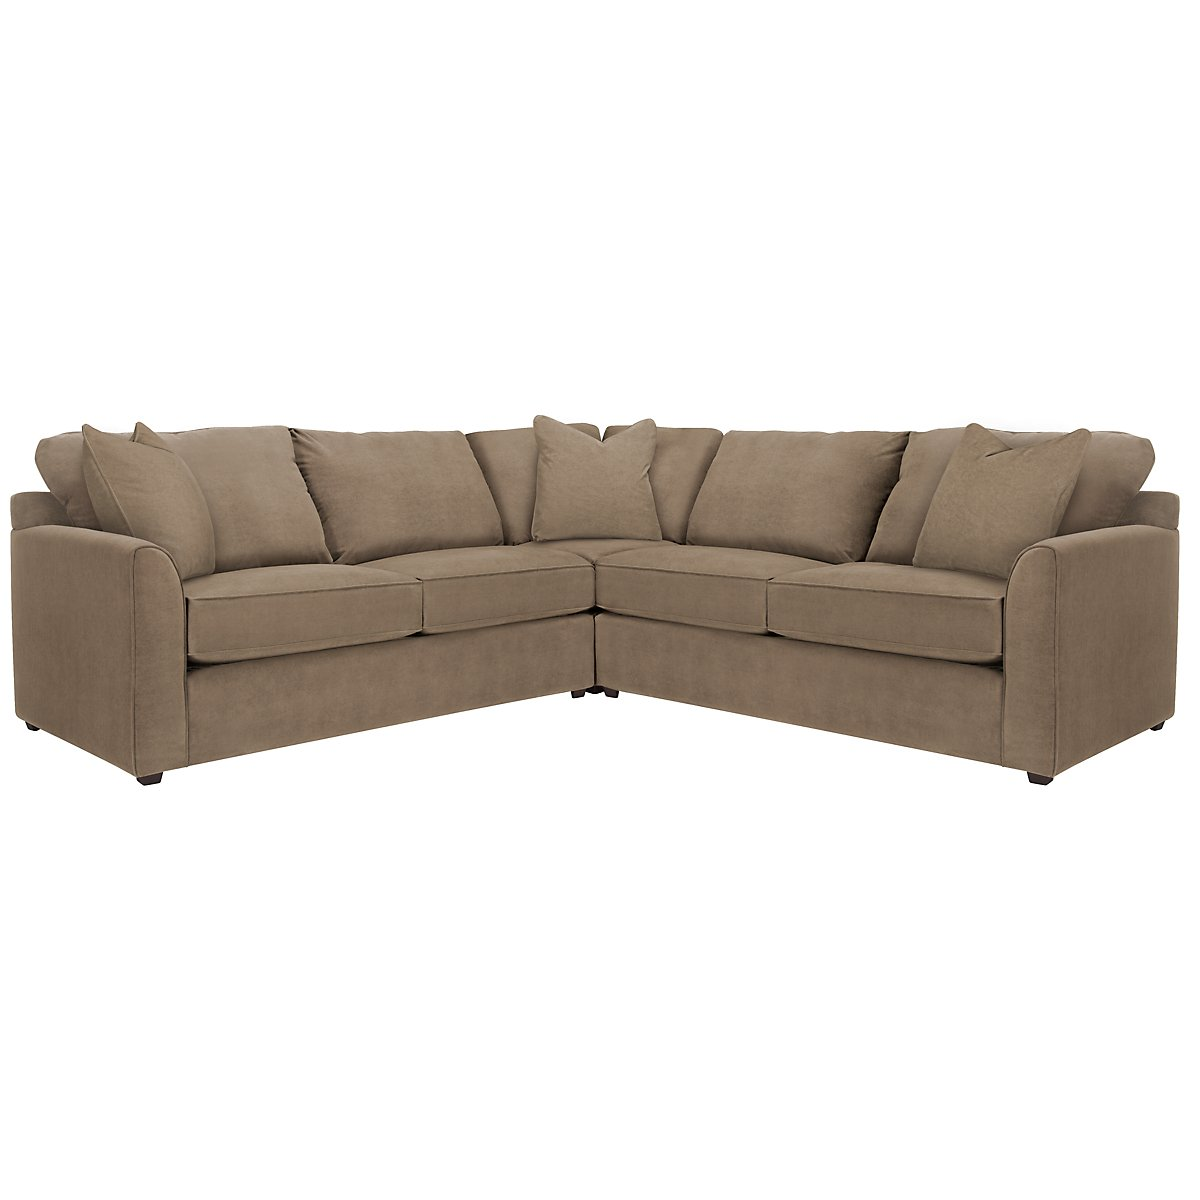 Express3 Lt Brown Microfiber Small Two-Arm Sectional